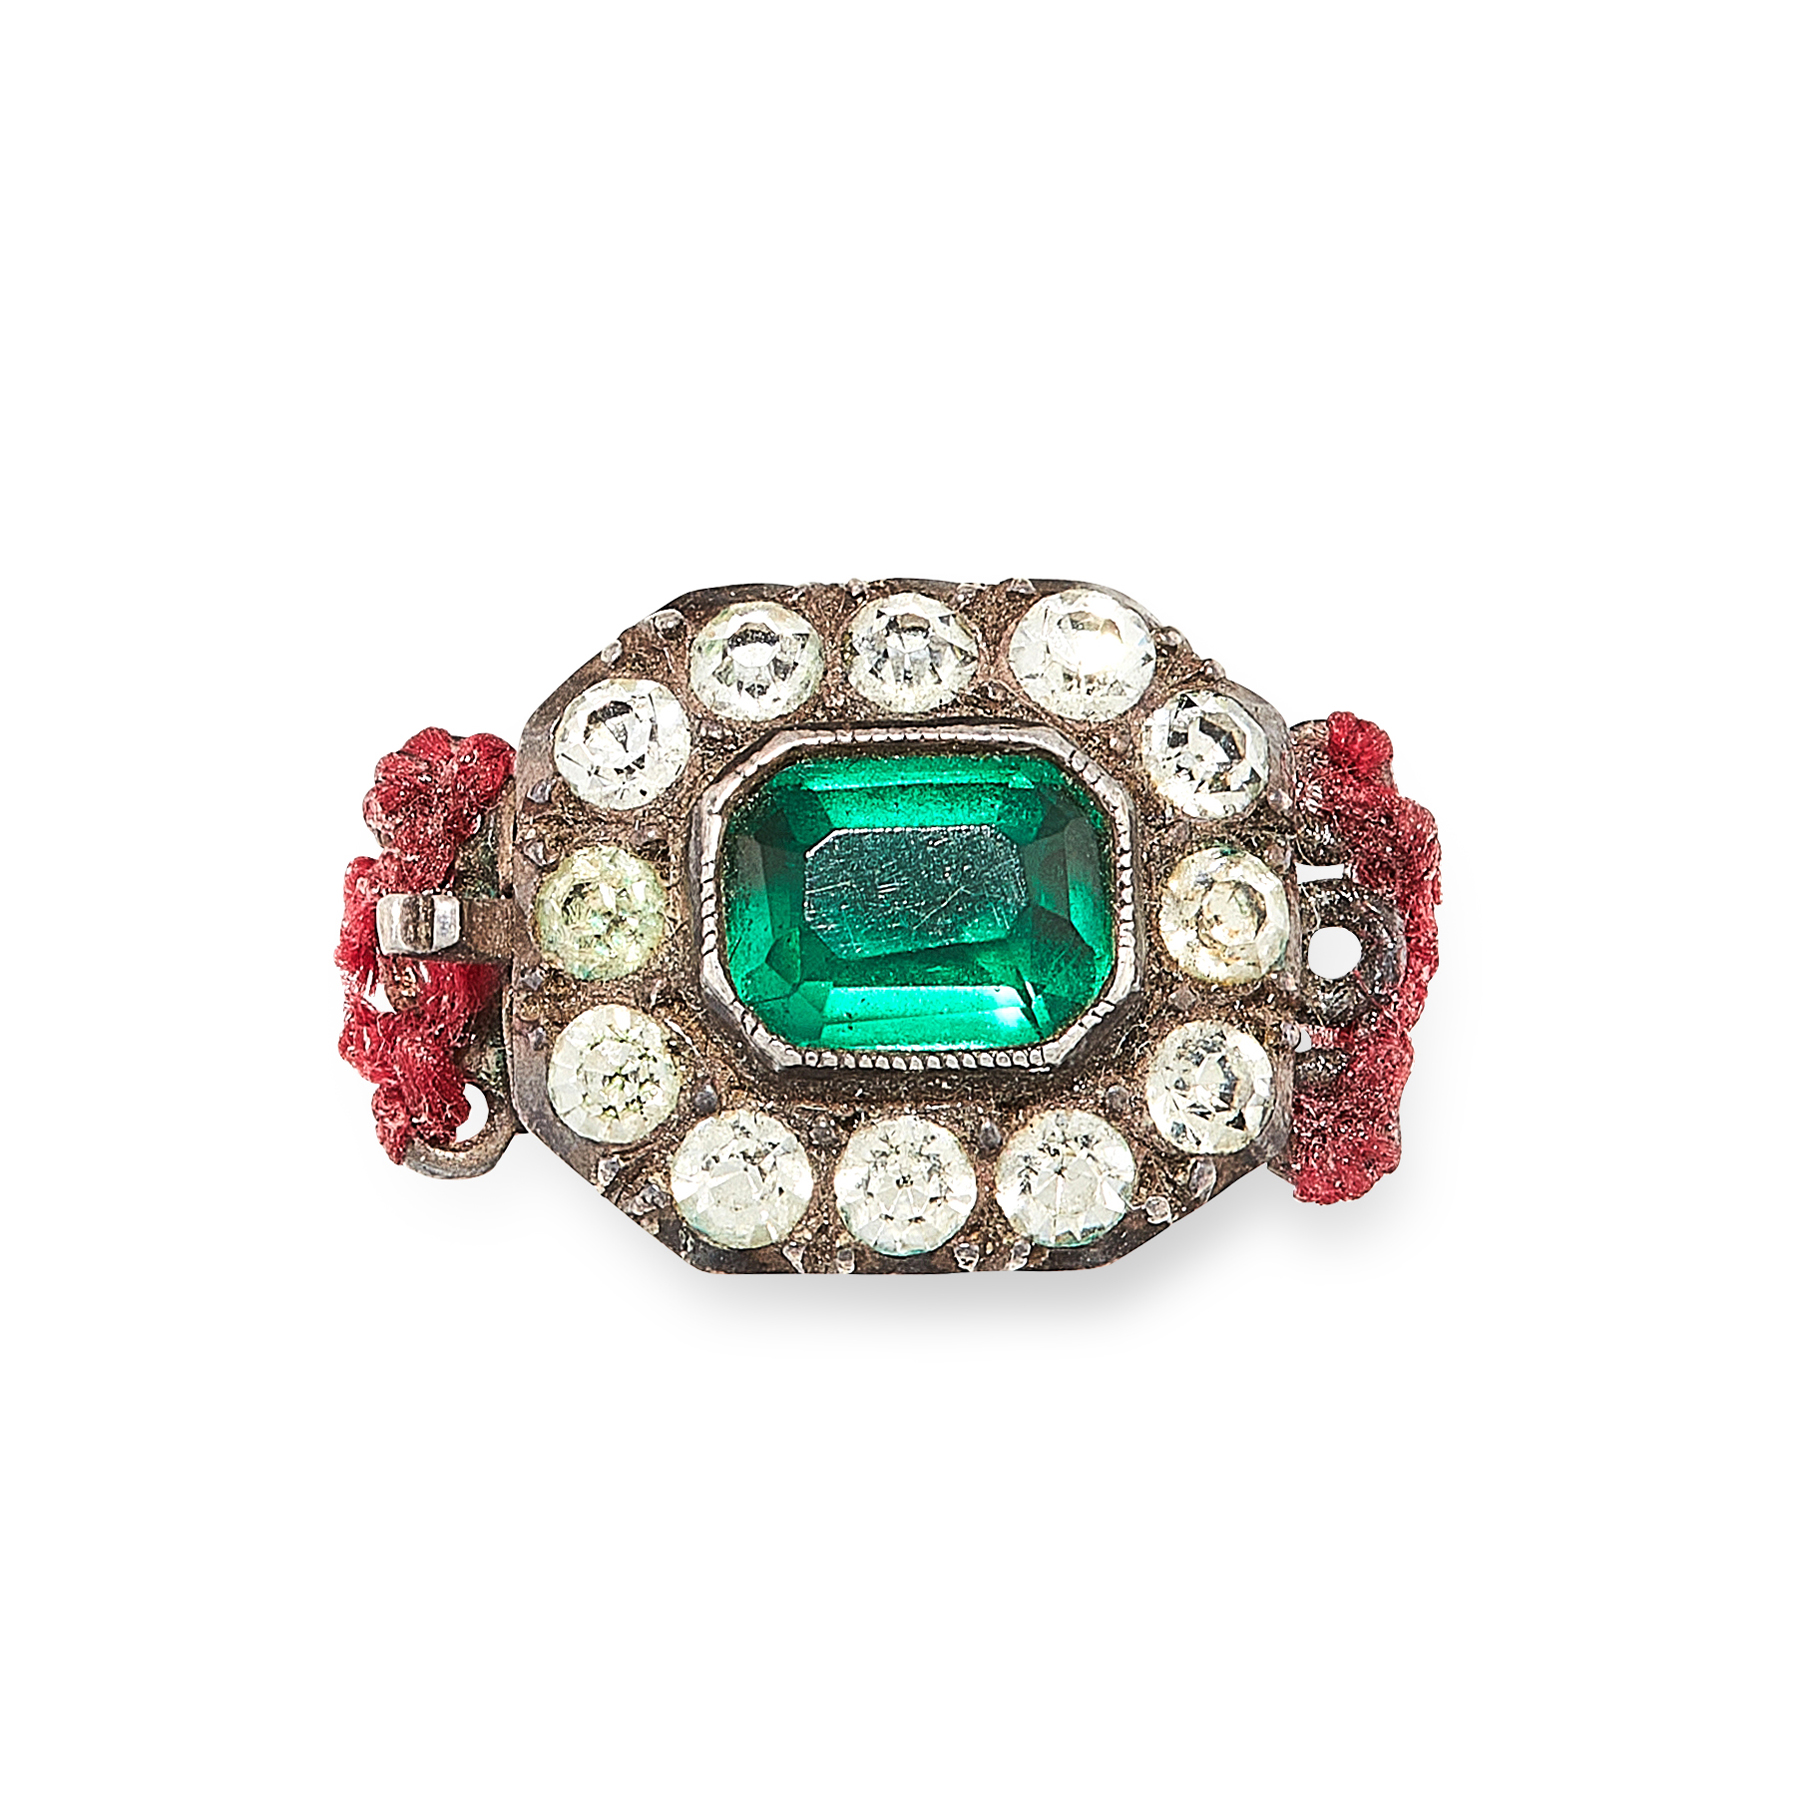 A JEWELLED PASTE CLASP in sterling silver, the octagonal body set with an emerald cut green paste